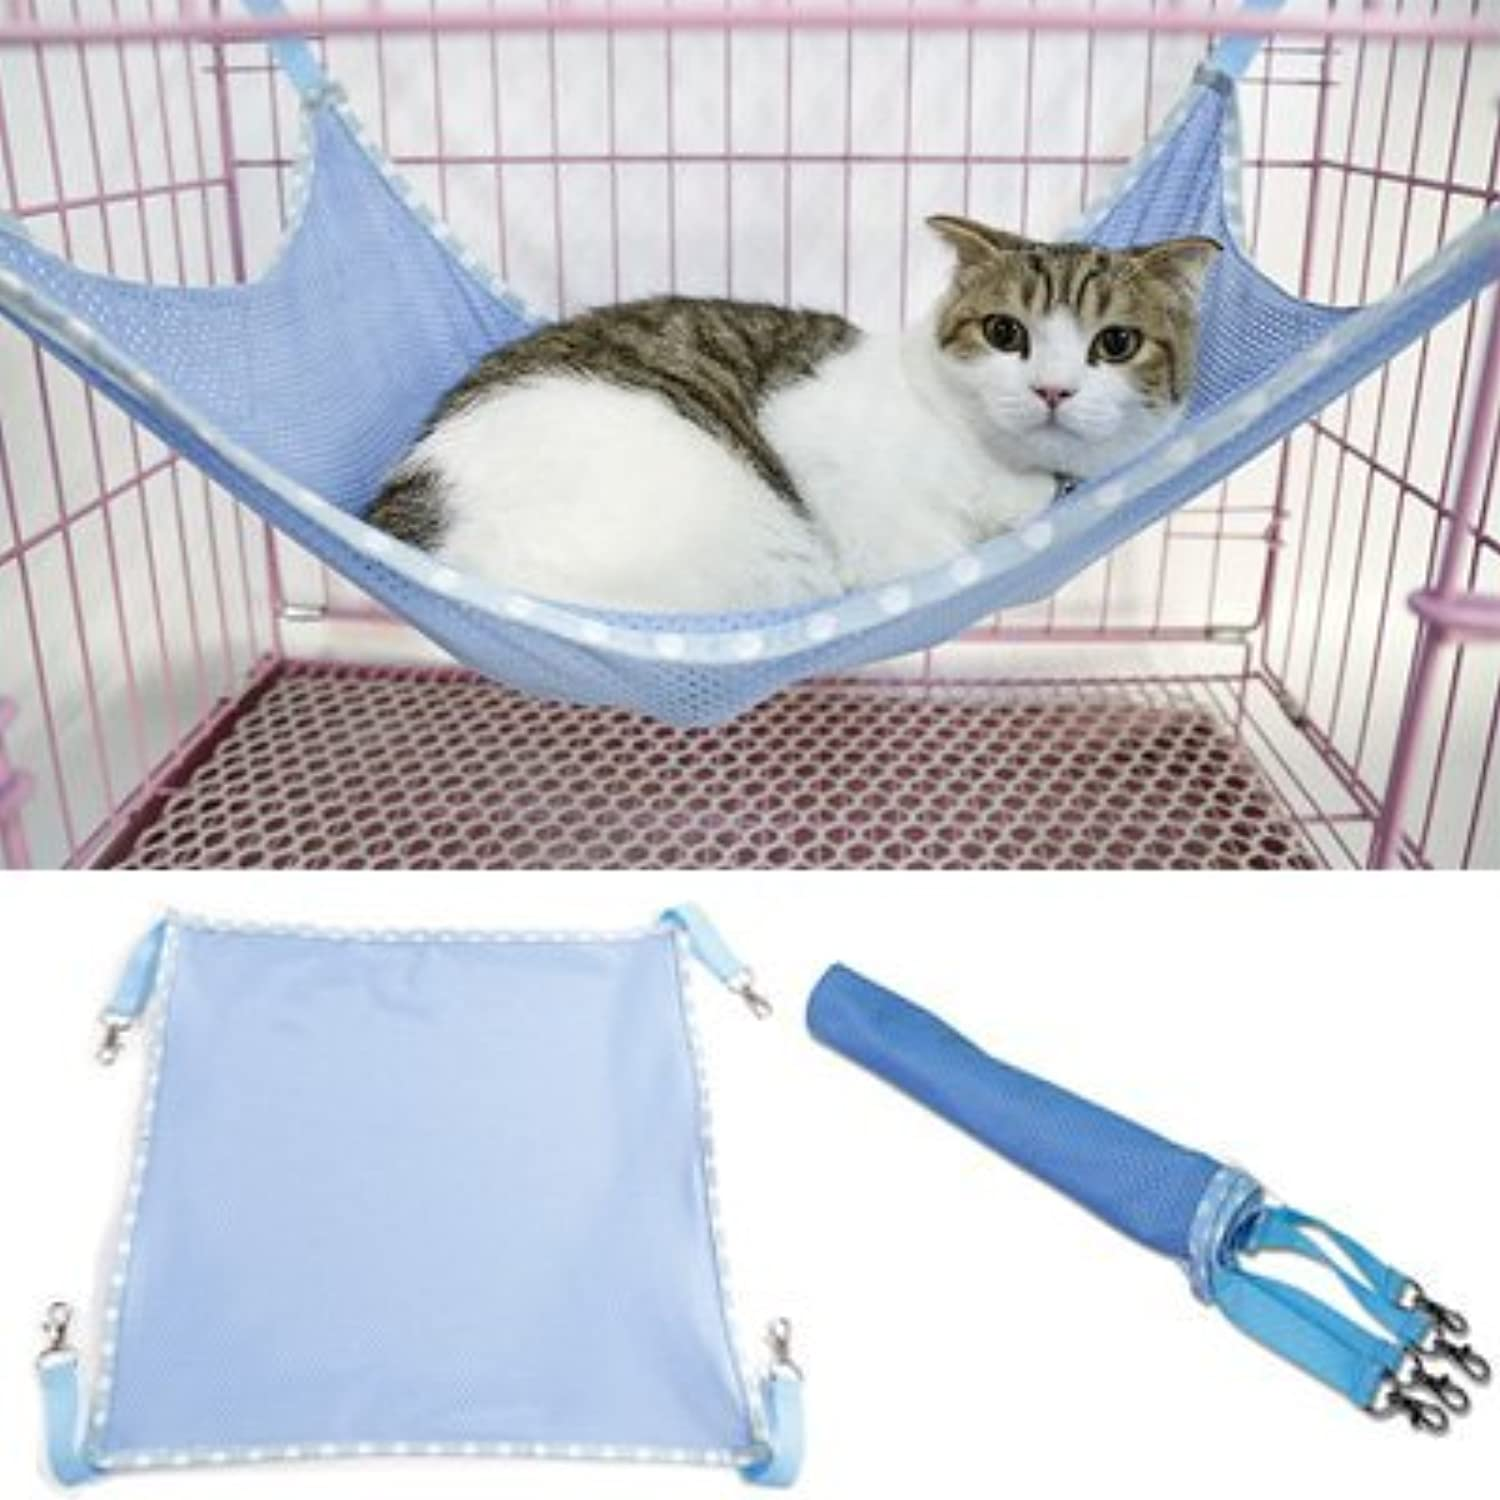 Fashion and Unique Cats Breathable Mesh Hammock Mat Bed Pet Cage Chair Hammock for Cats Small Dogs Rabbits Other Small Animals(bluee)